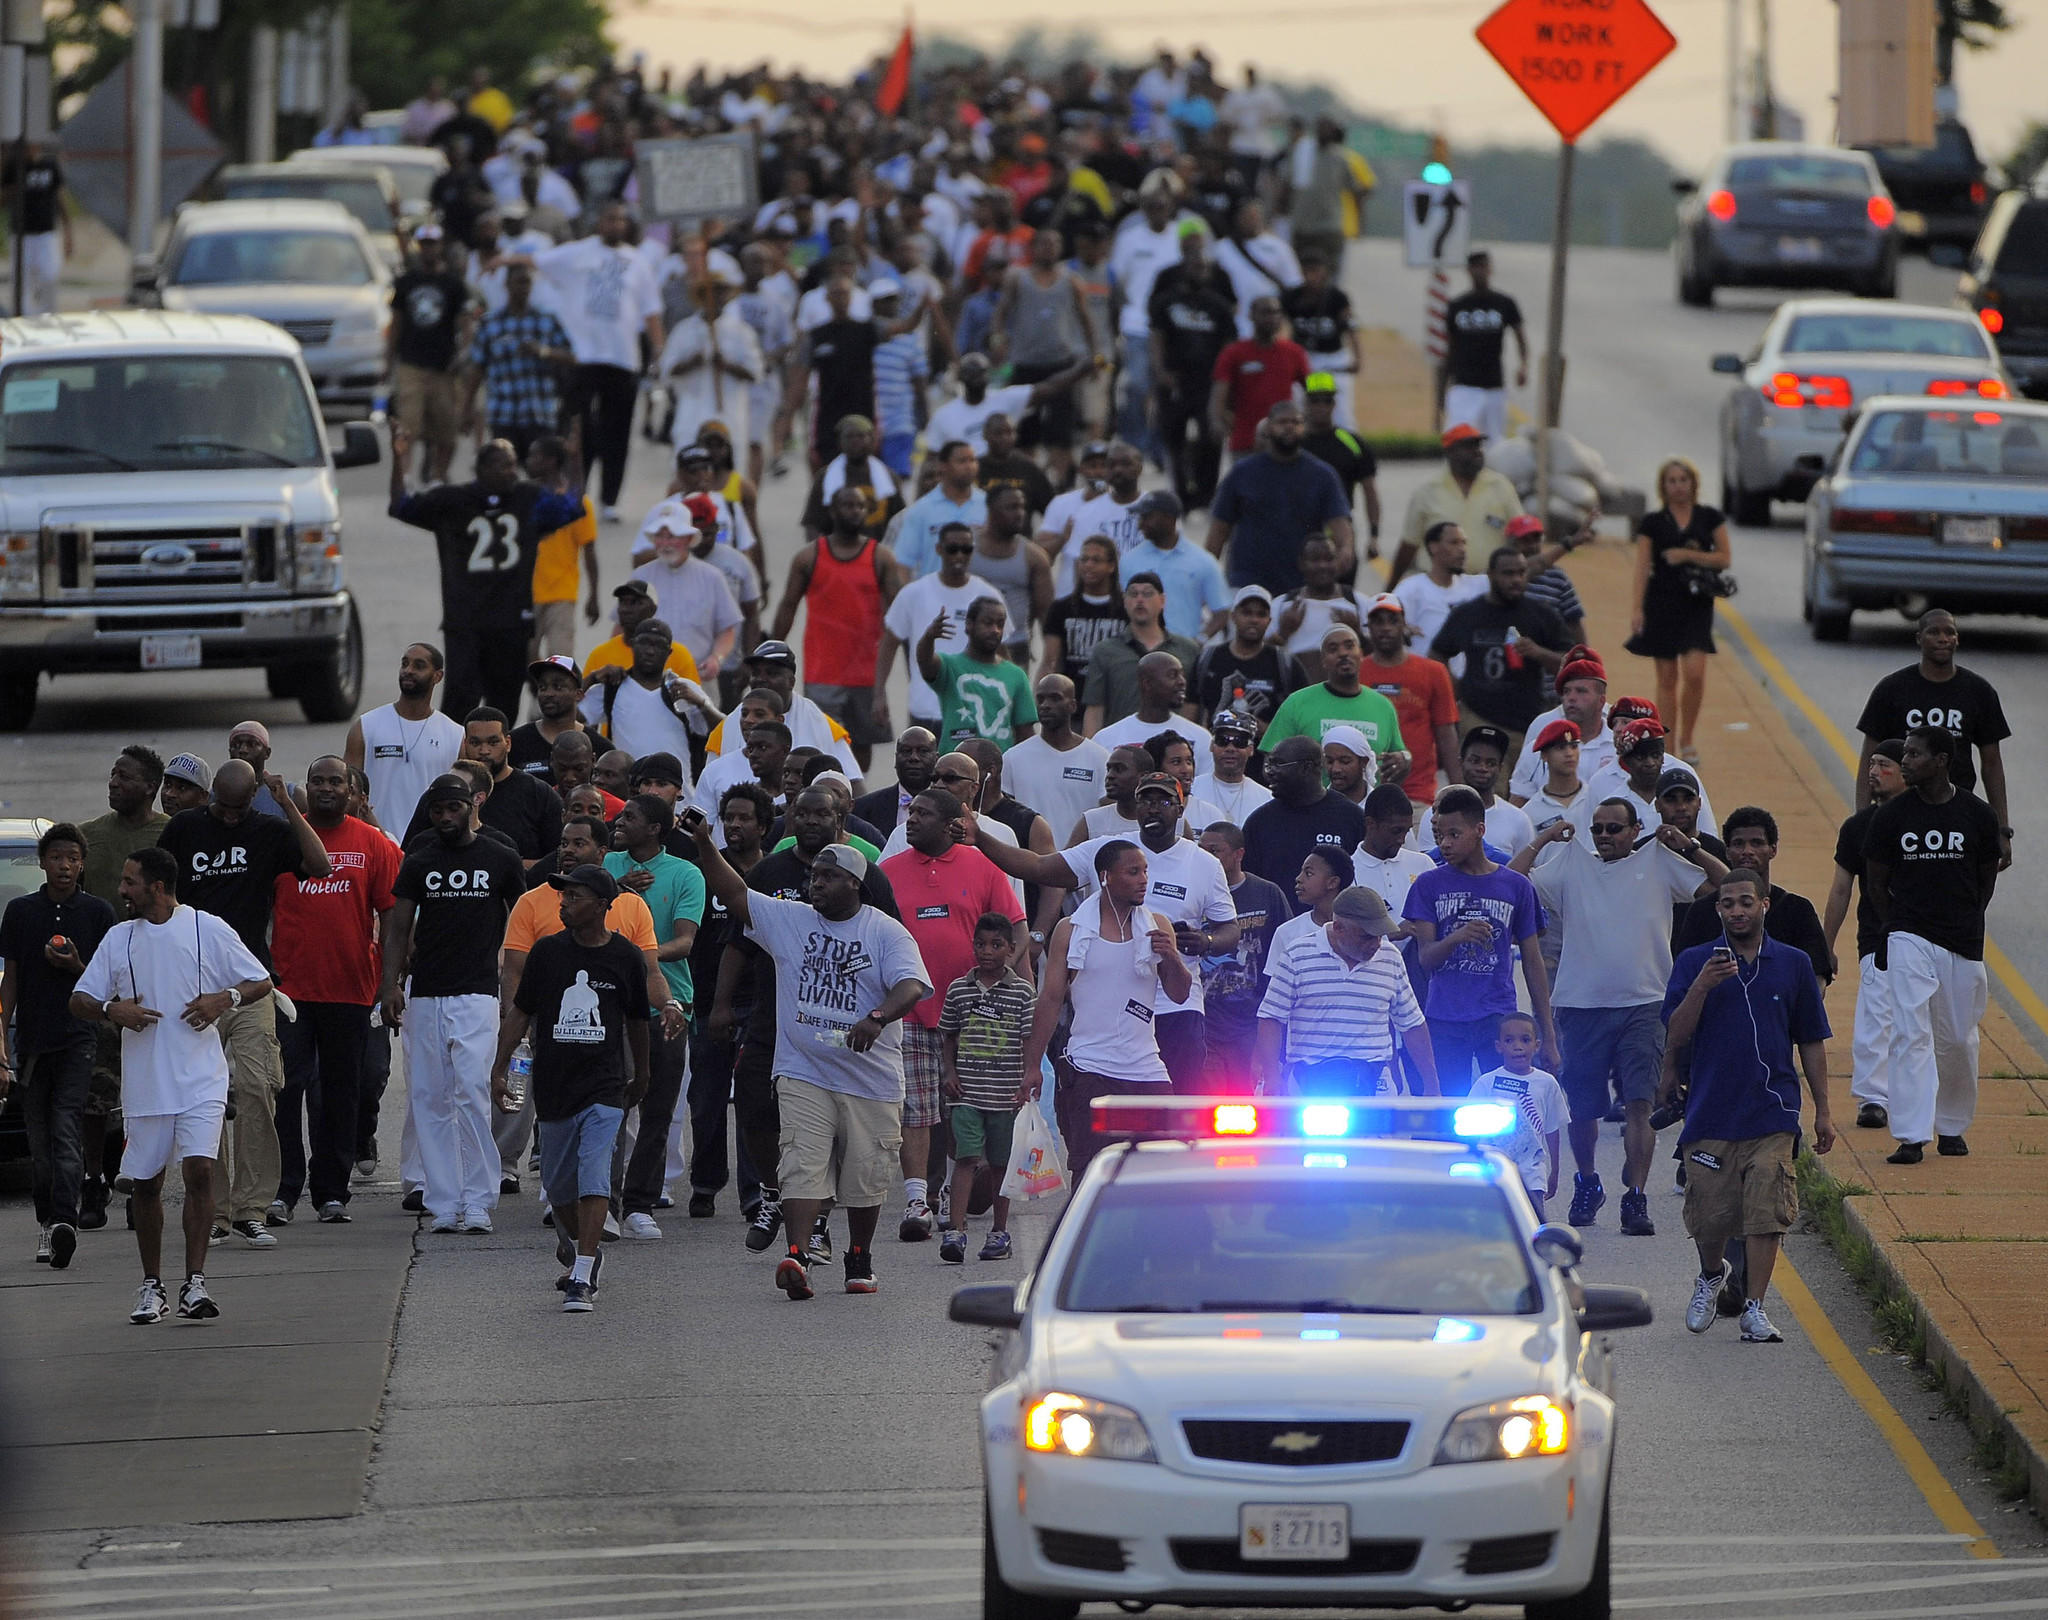 People march on North Avenue during a 300 Man March to speak out against violence in the city.